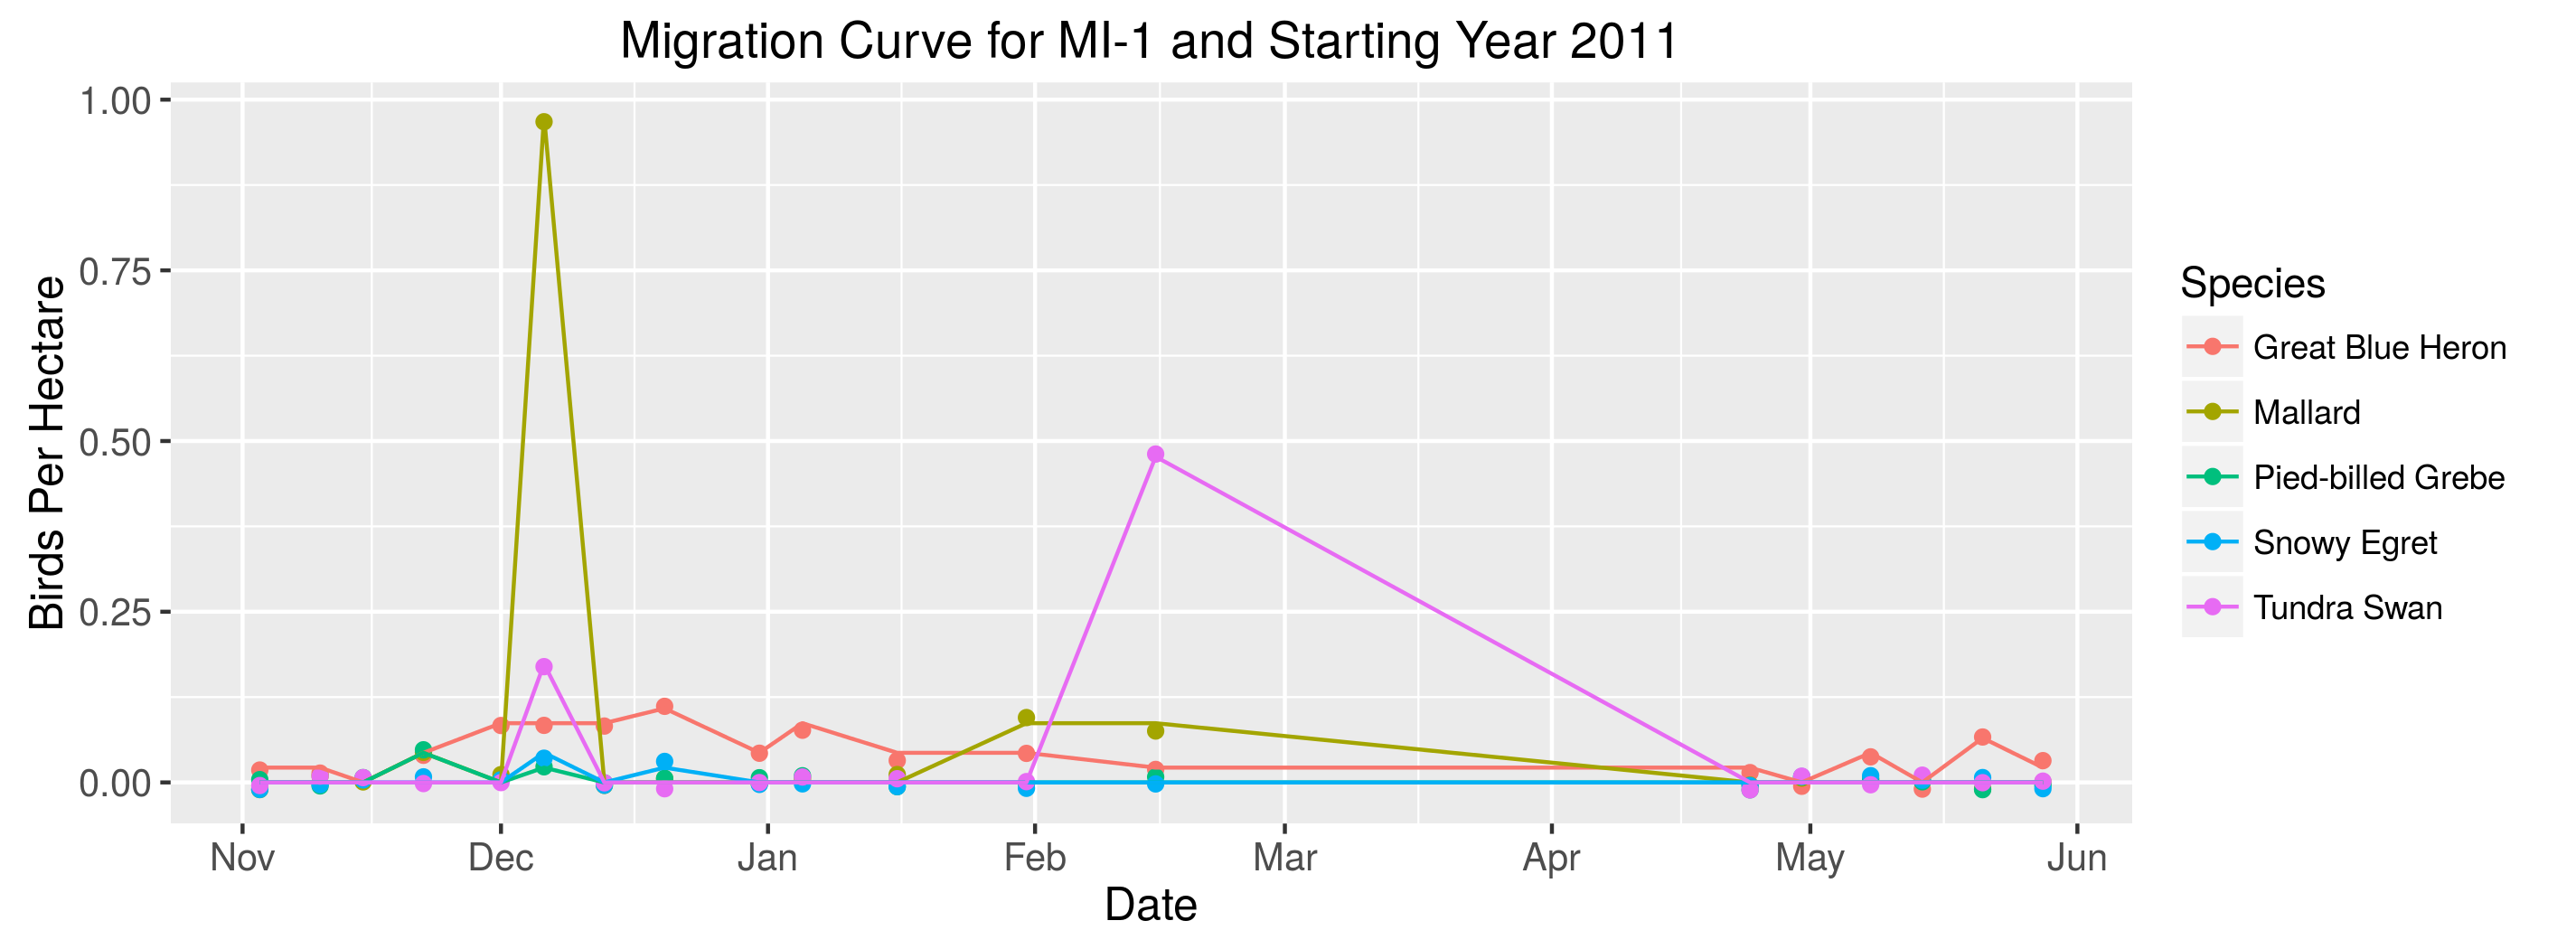 Example from IWMM-AKN database: Migration Curve for Mattamuskeet NWR, part of the Bird Use Days Report